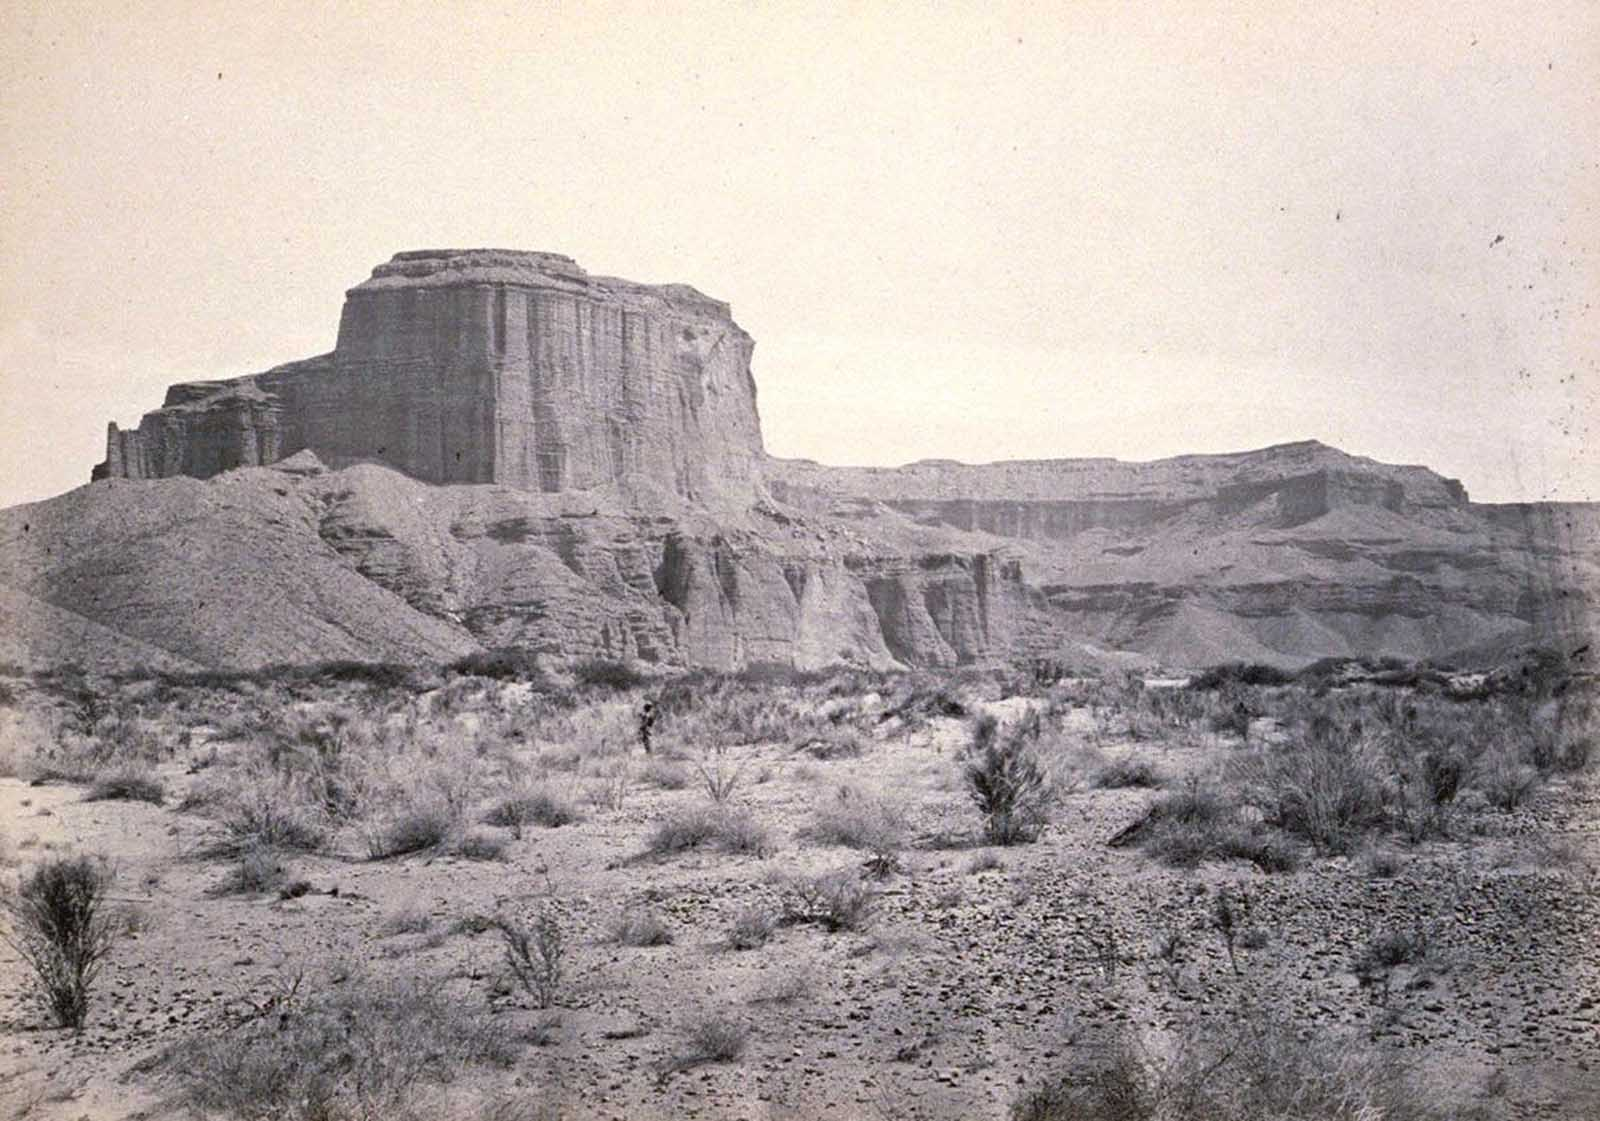 Cathedral Mesa, Colorado River, Arizona, 1871.